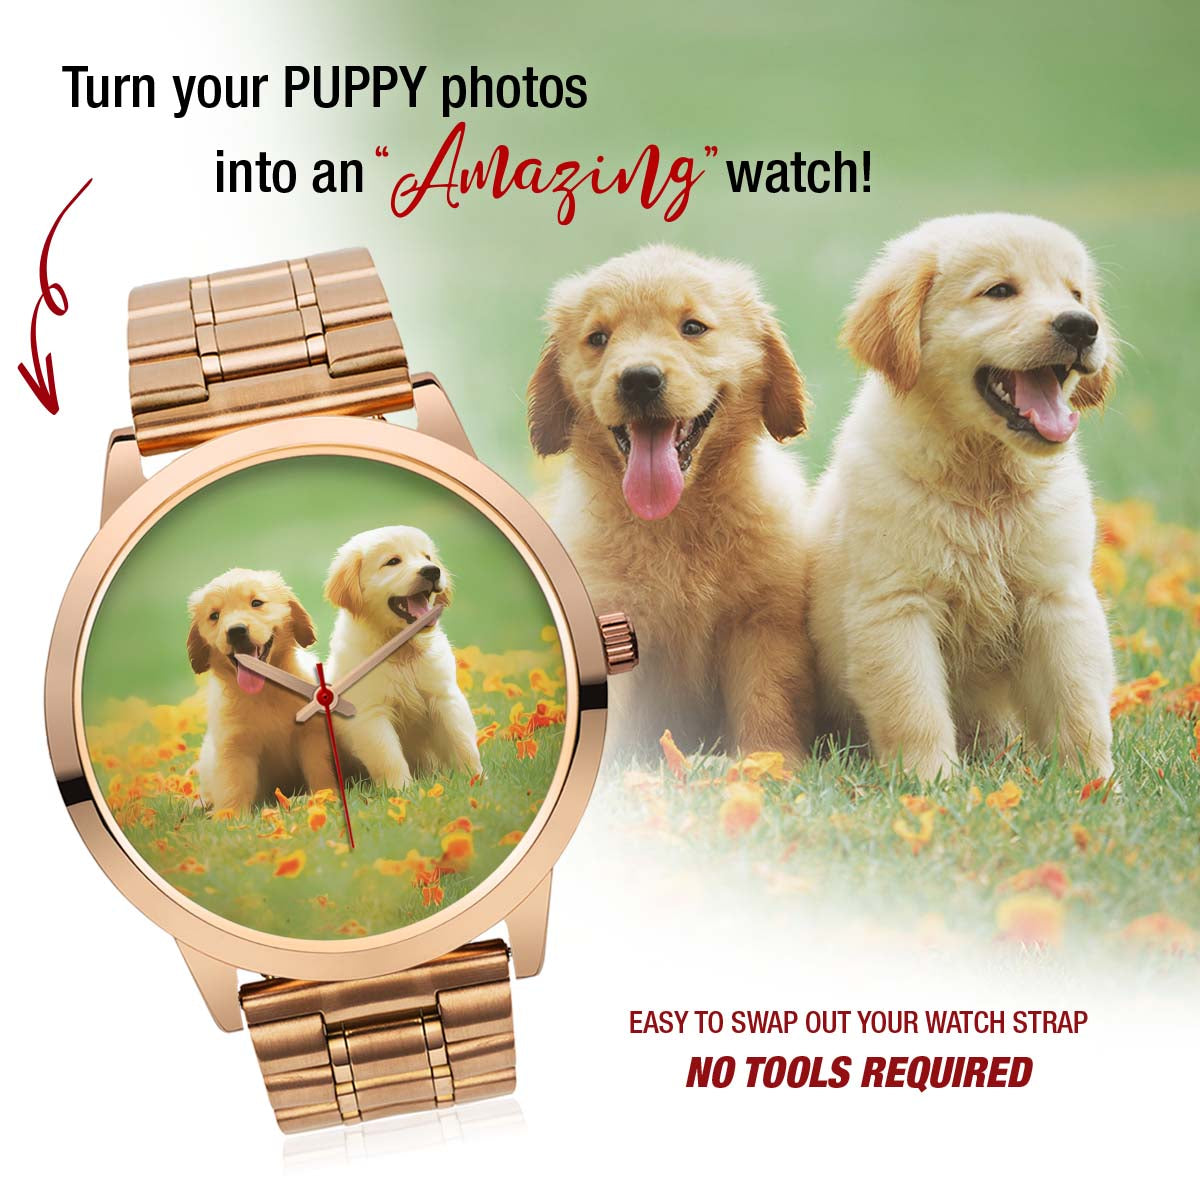 PERSONALIZED watch - upload your PUPPY photos